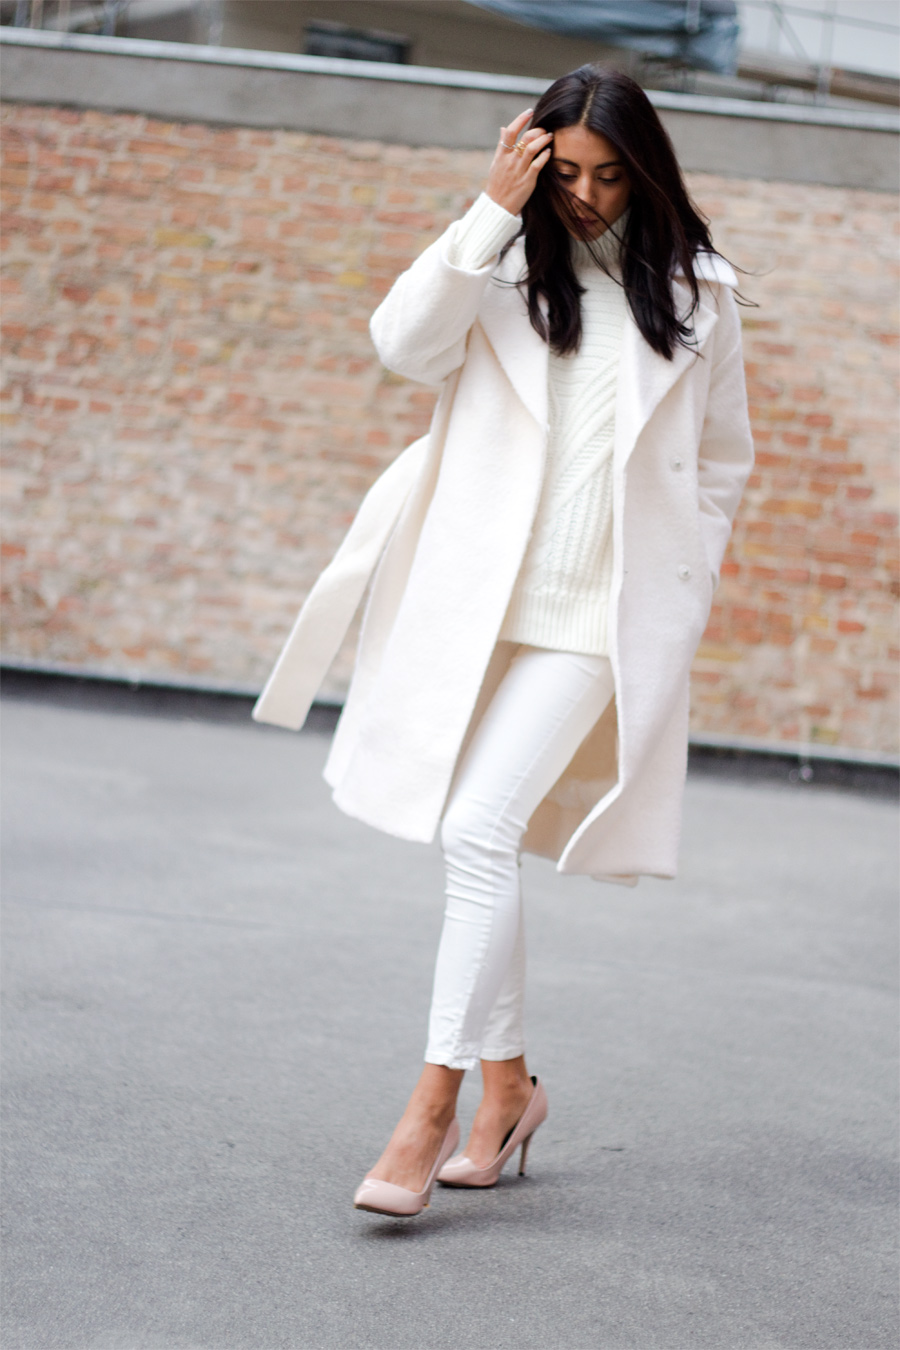 Autumn Has Arrived... So Has The Robe Coat Trend - Just The Design